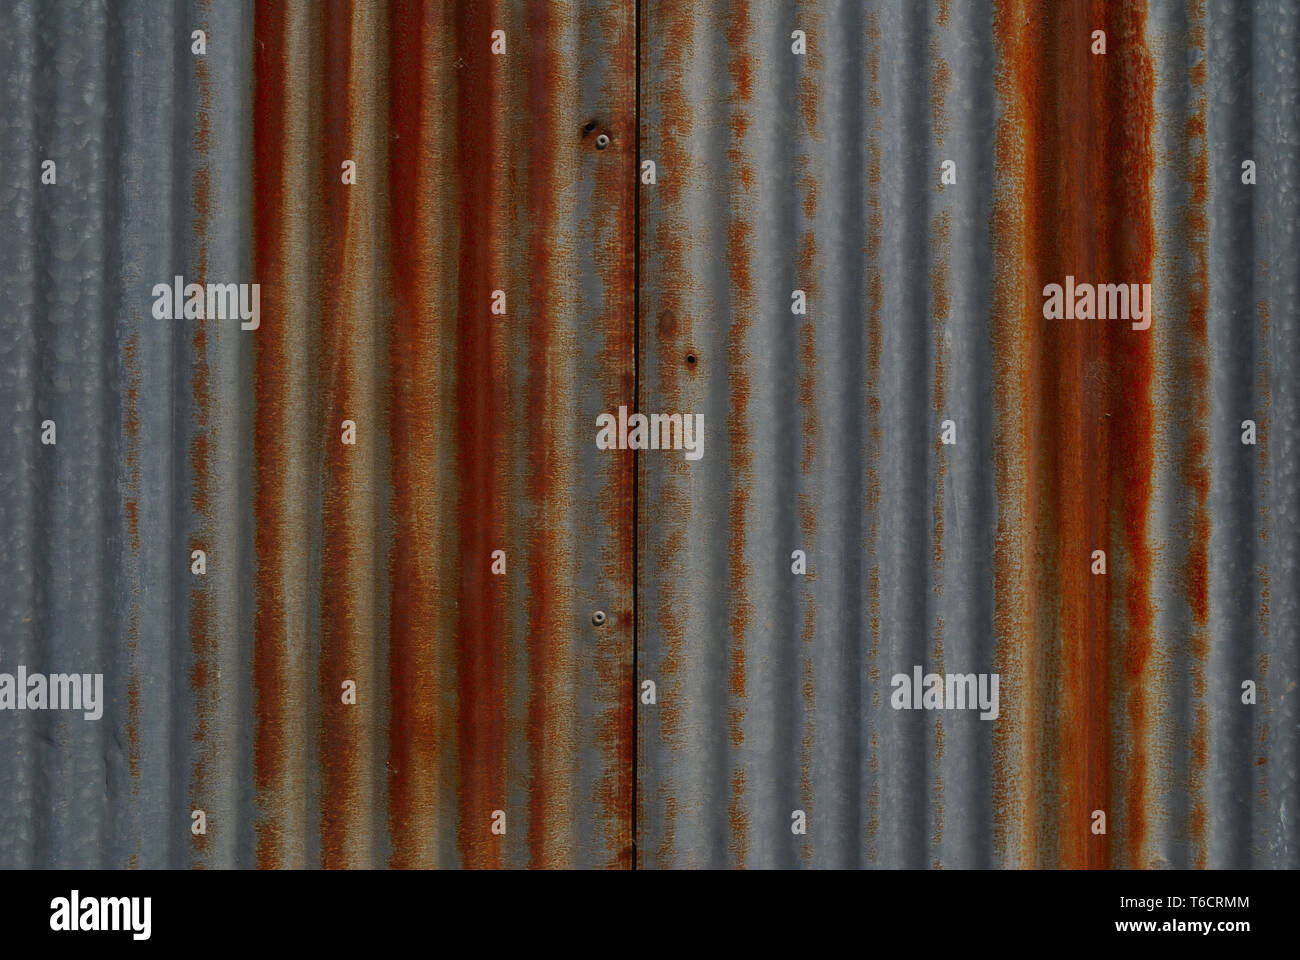 Galvanized surface that is rusty red - Stock Image